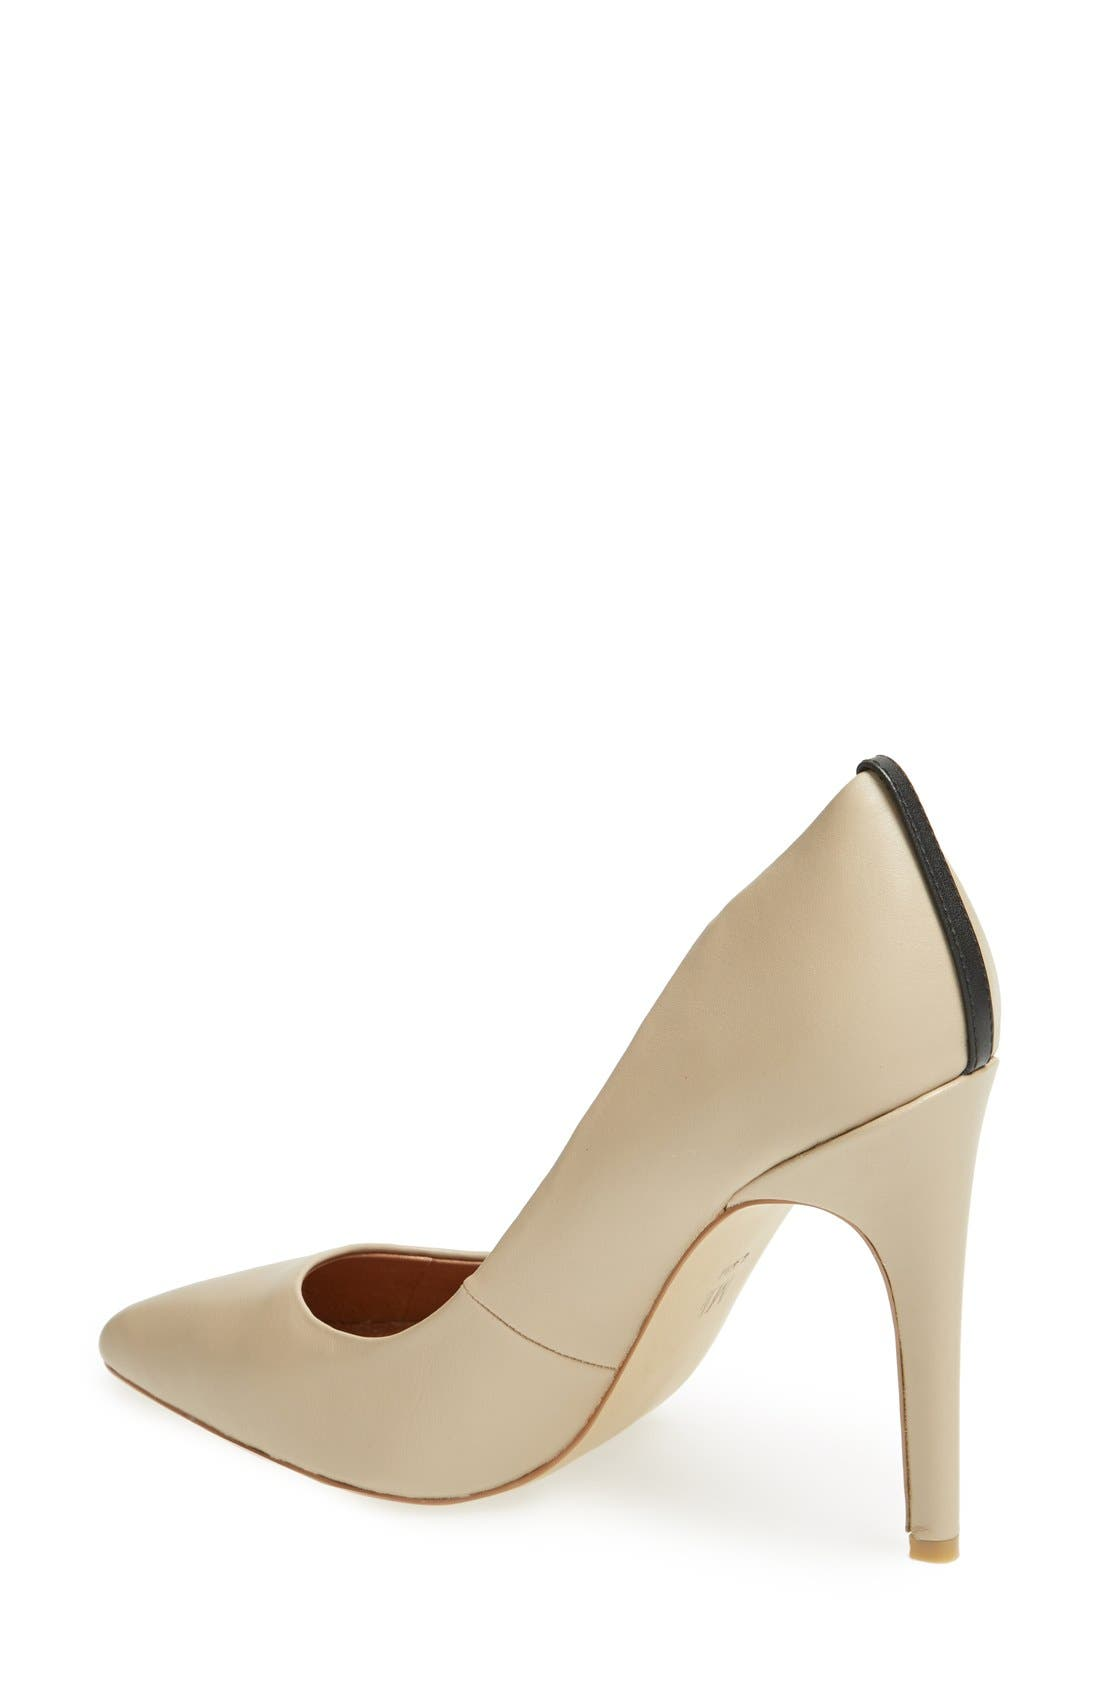 'Jolie' Pointy Toe Pump,                             Alternate thumbnail 2, color,                             Taupe